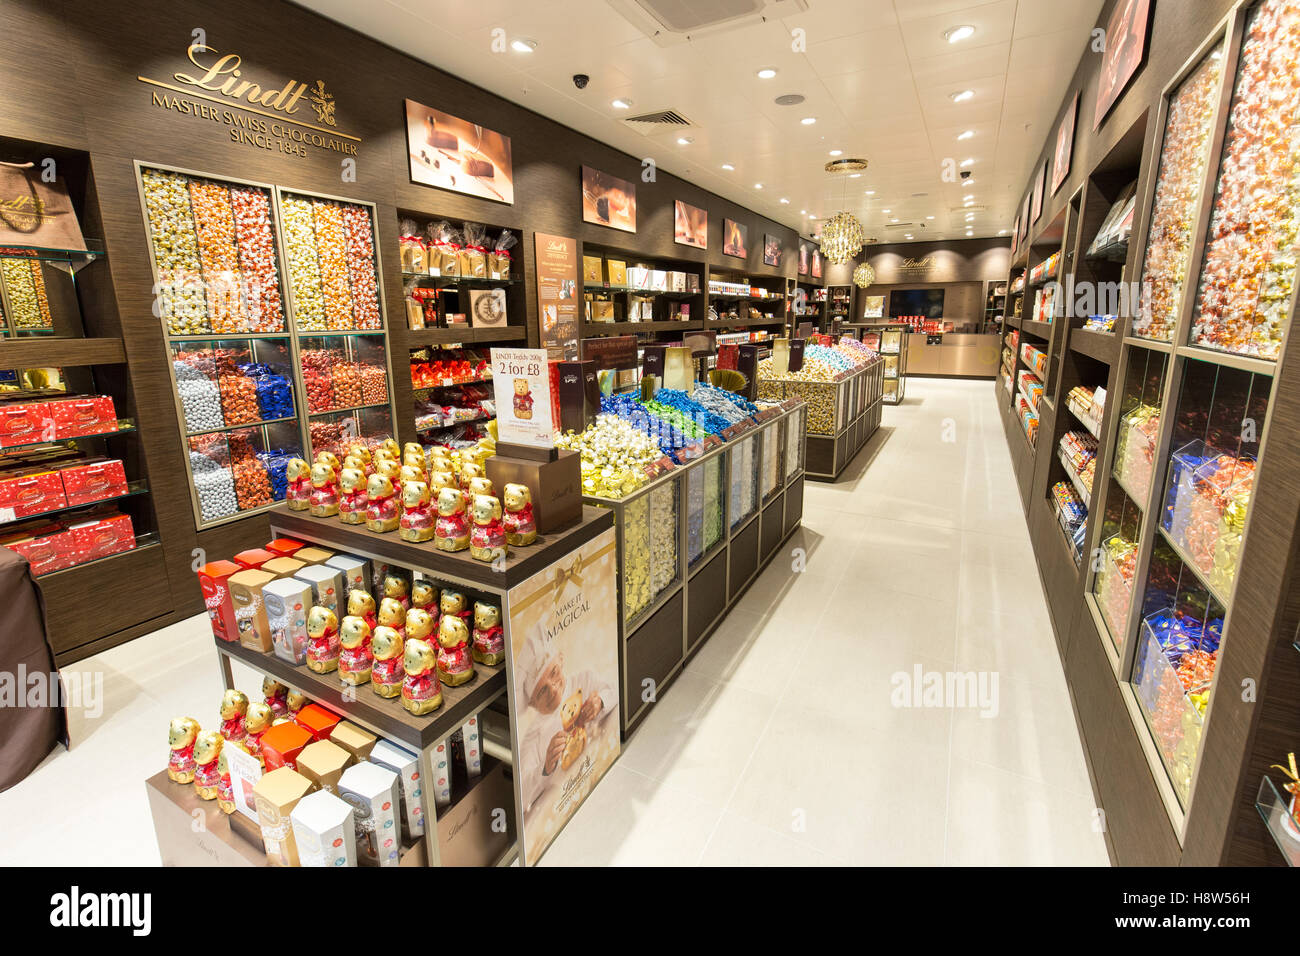 Lindt Chocolate store Stock Photo, Royalty Free Image: 125942729 ...